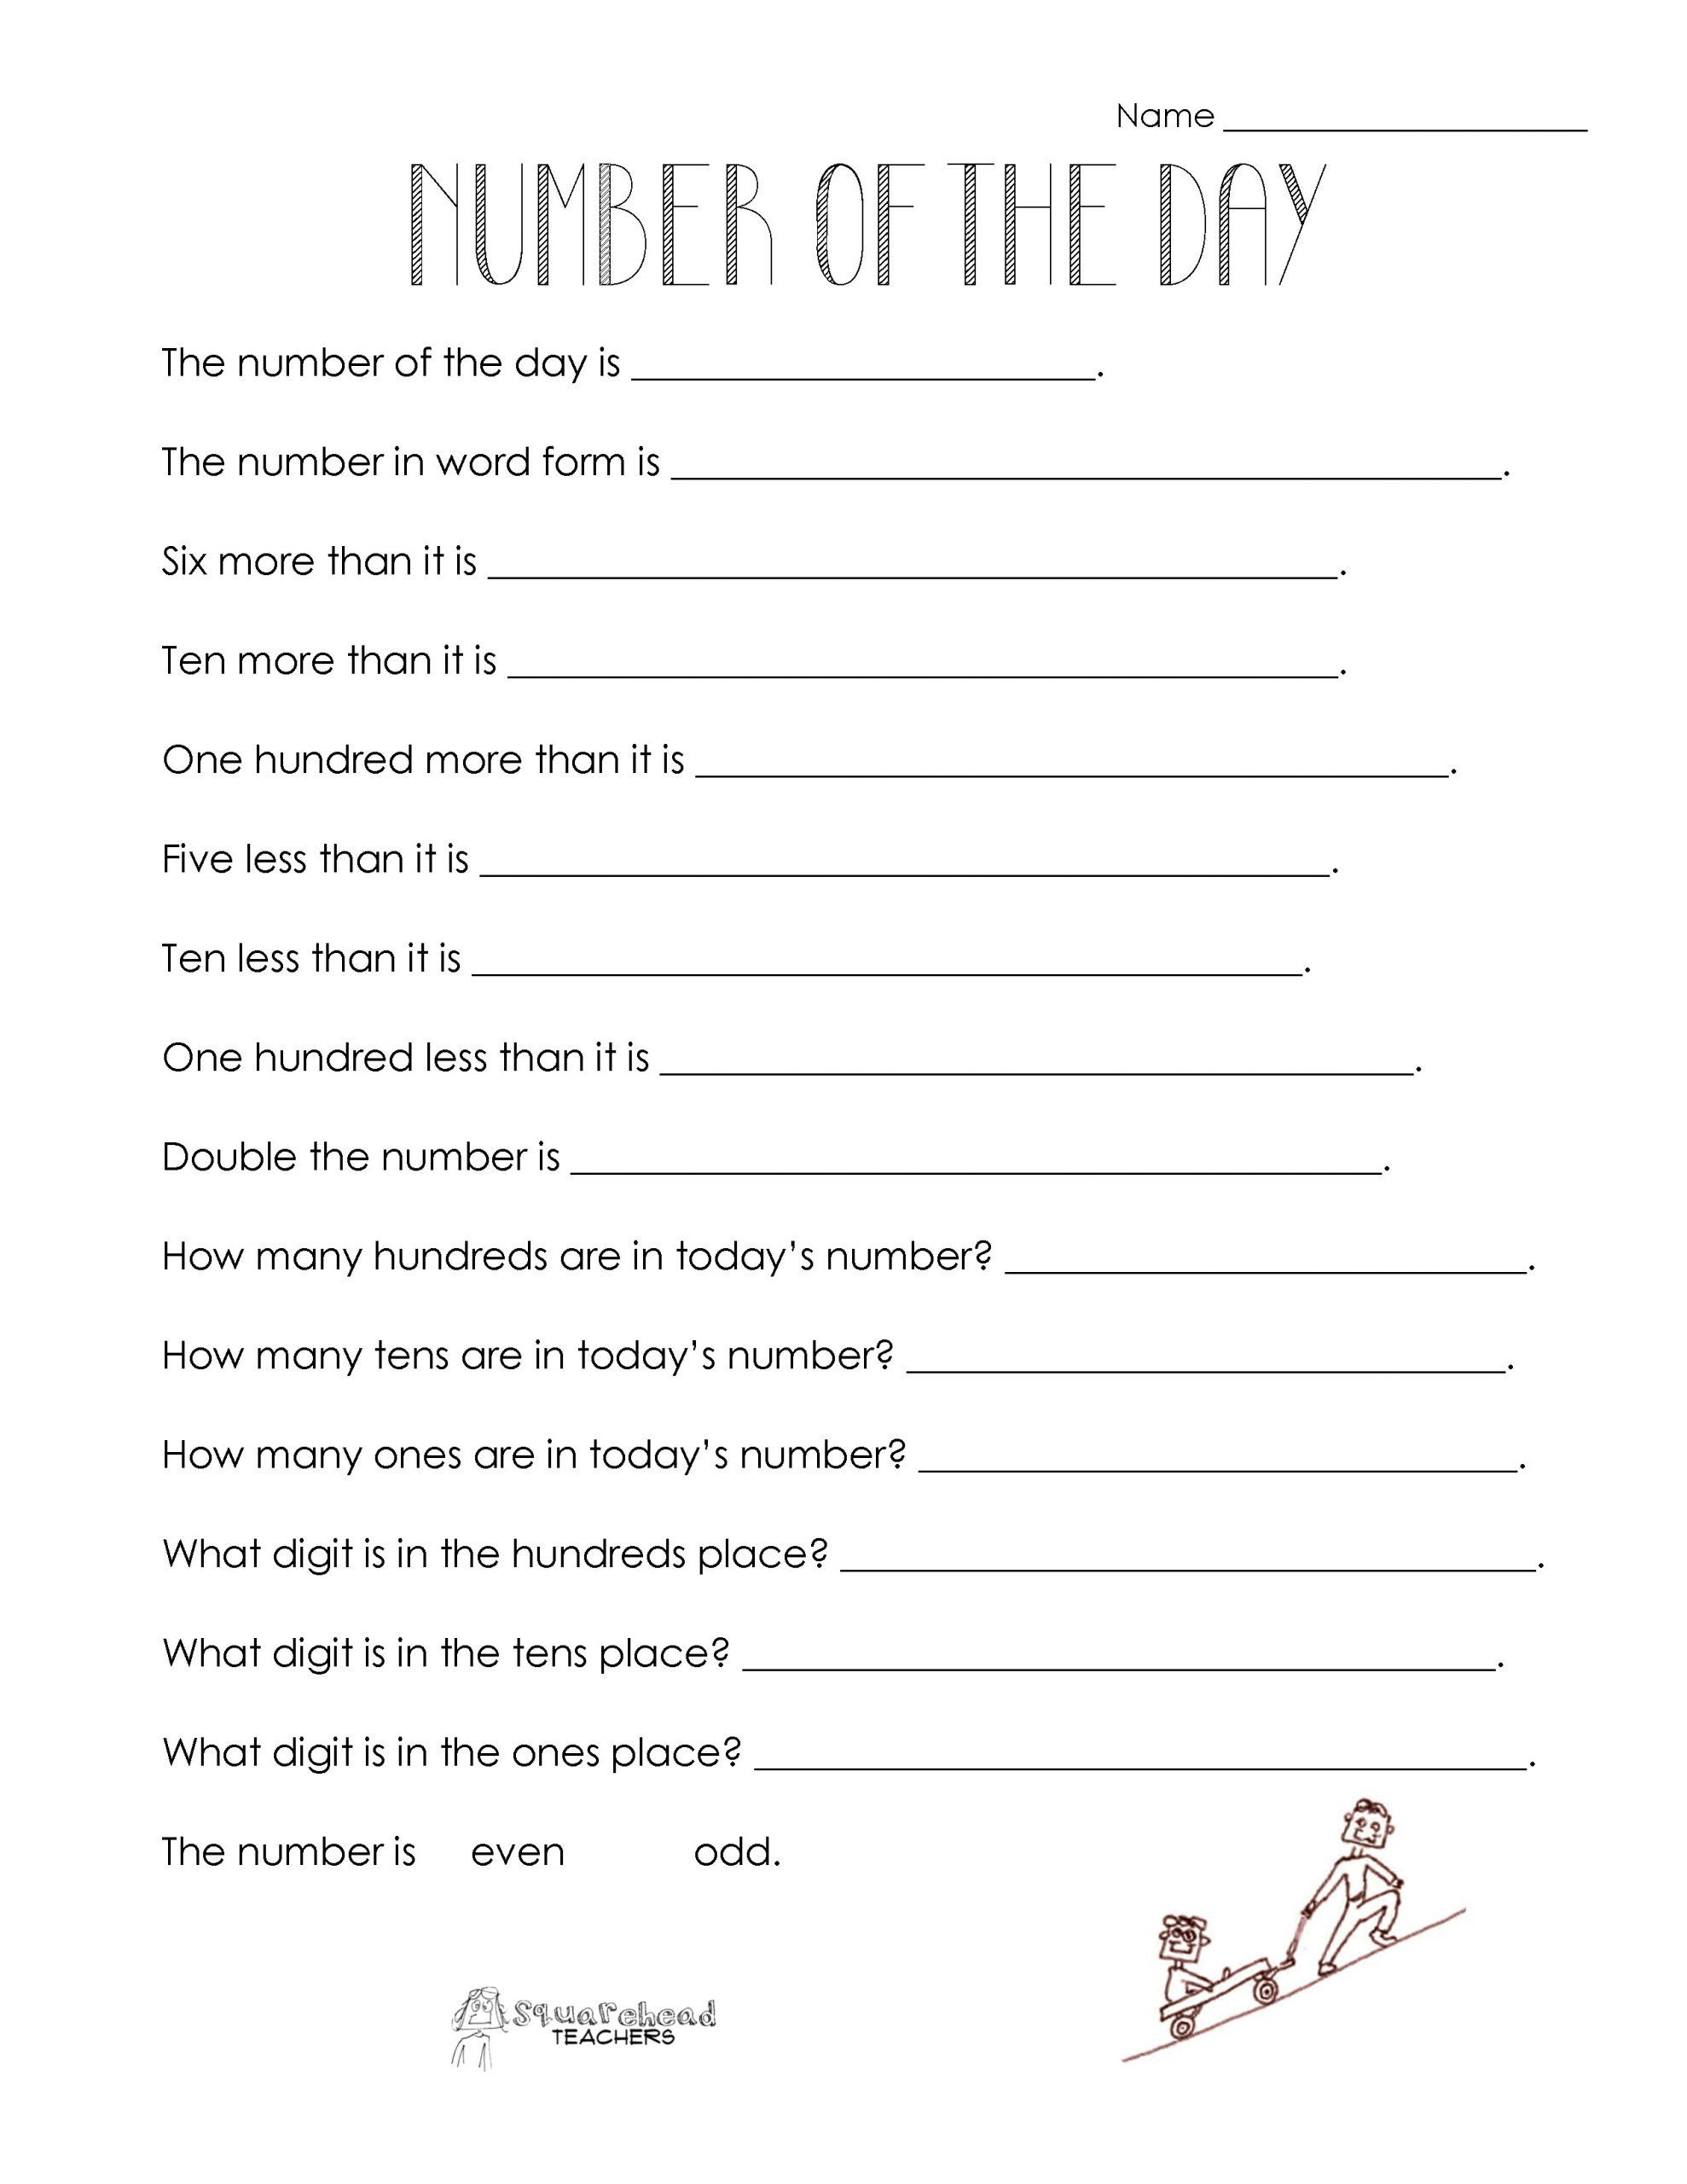 hight resolution of Patterns Worksheets 4th Grade Number Of the Day Worksheet Collection   Sequencing  worksheets